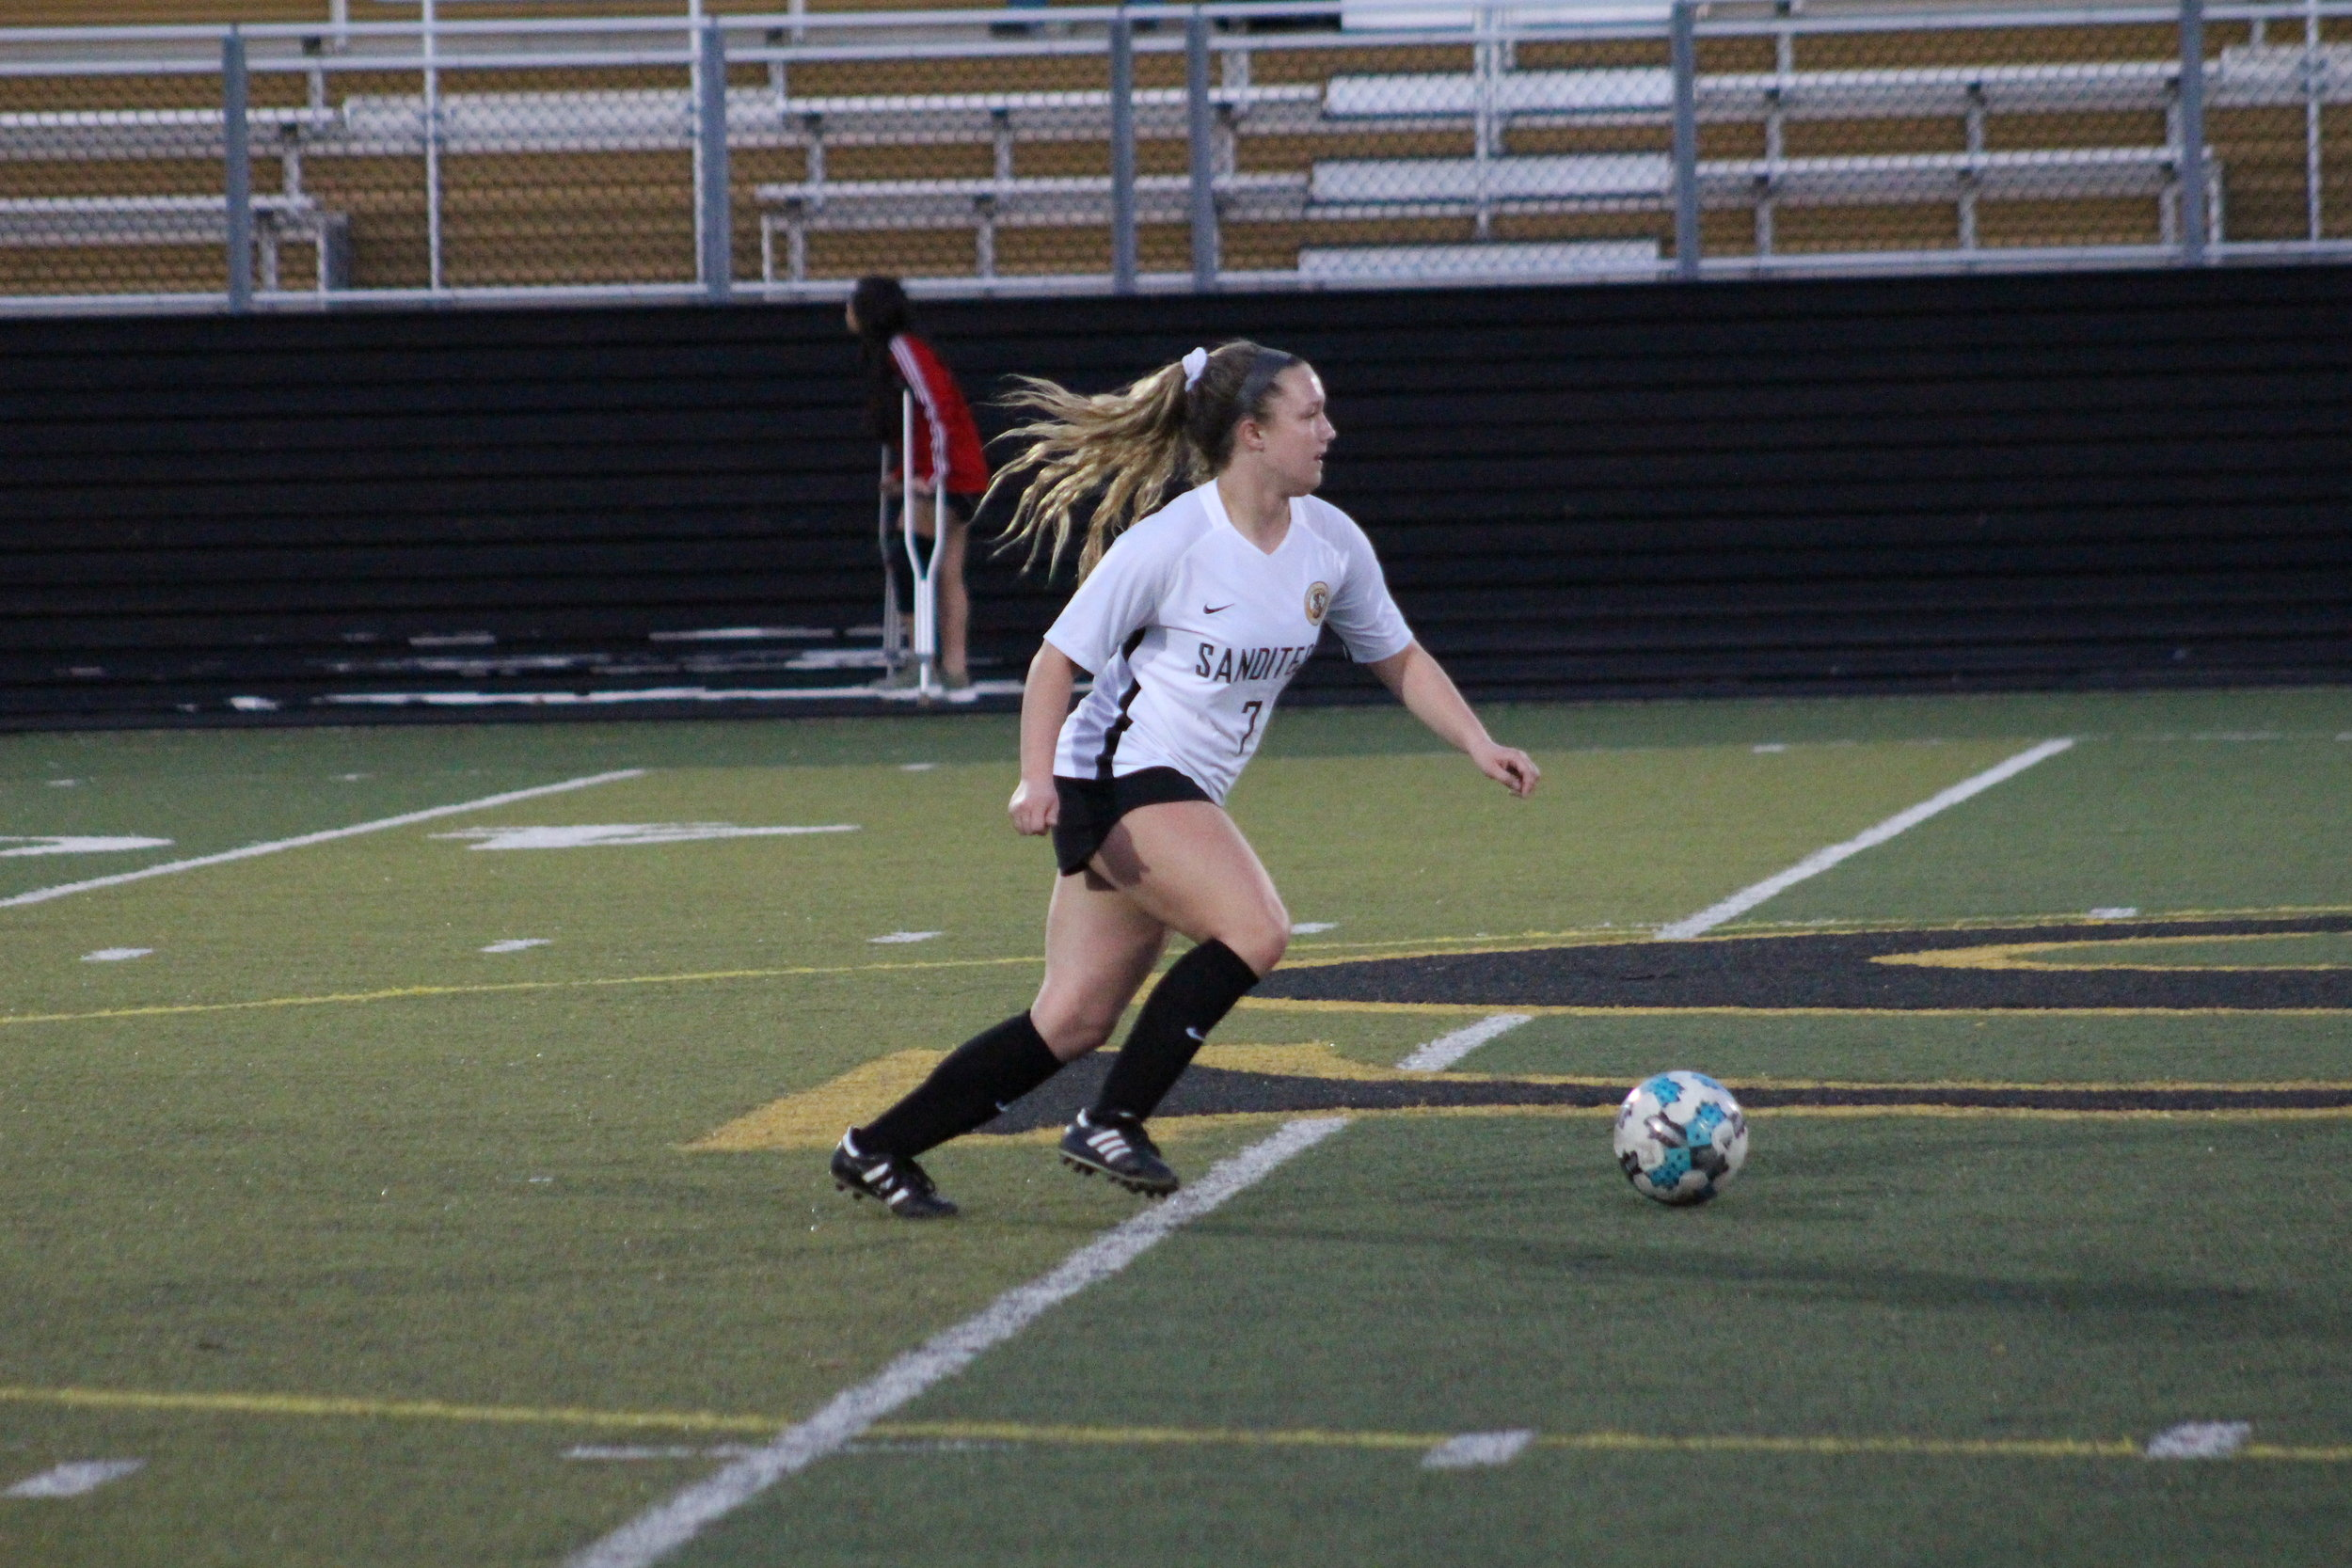 Kylie Taylor scored the first goal of the season for the Sand Springs Lady Sandites. (Photo: Scott Emigh).